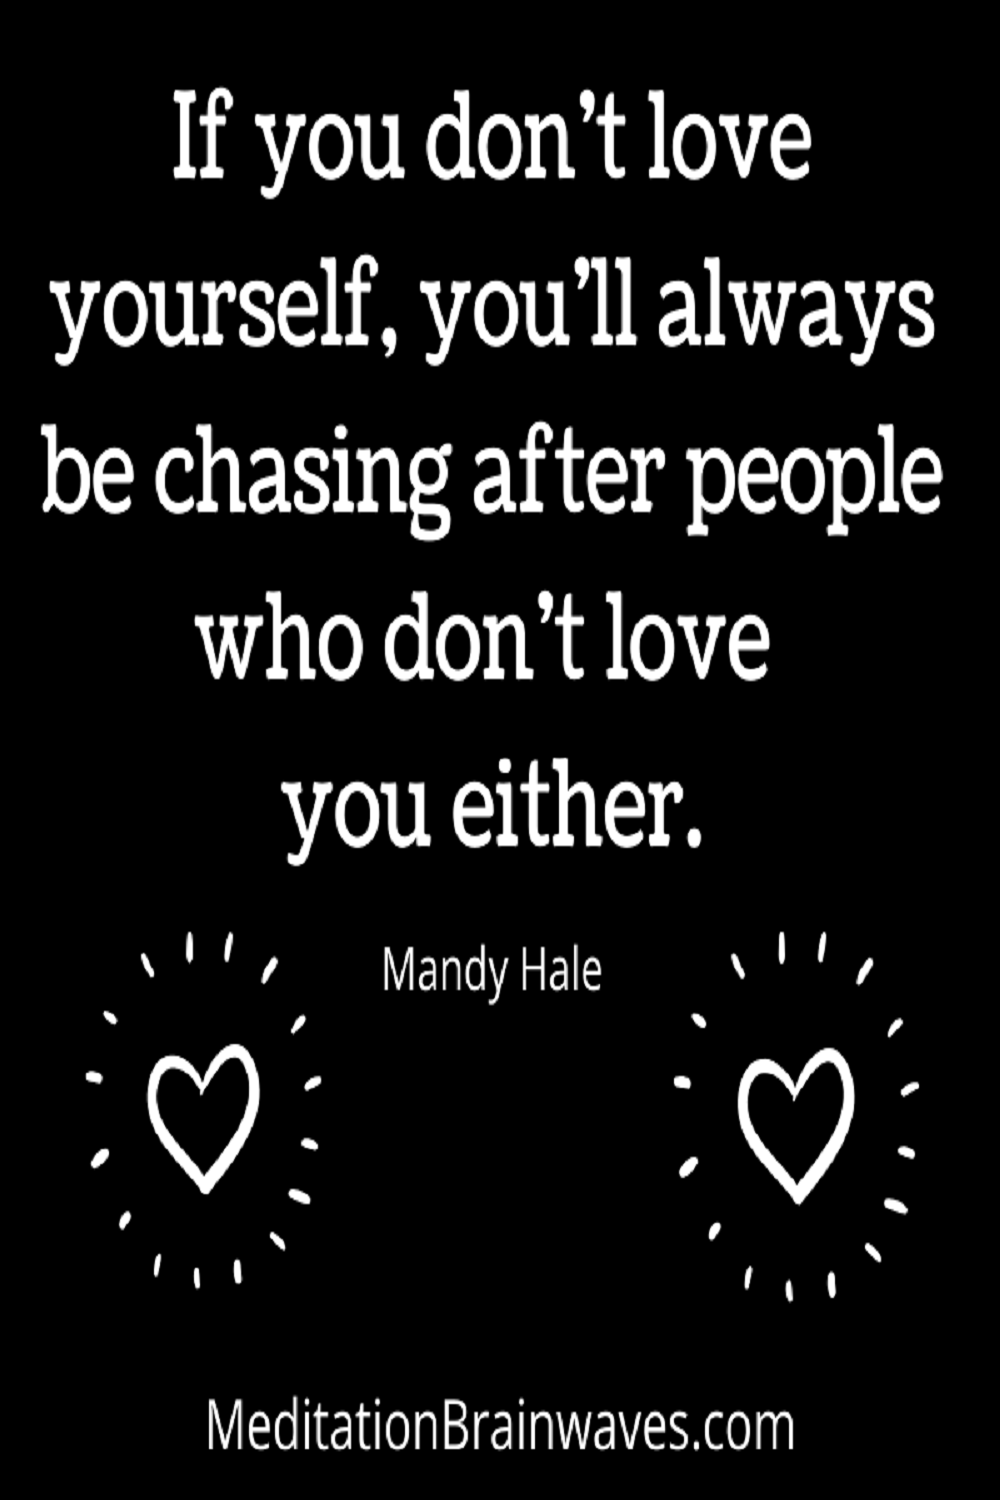 mandy hale quotes